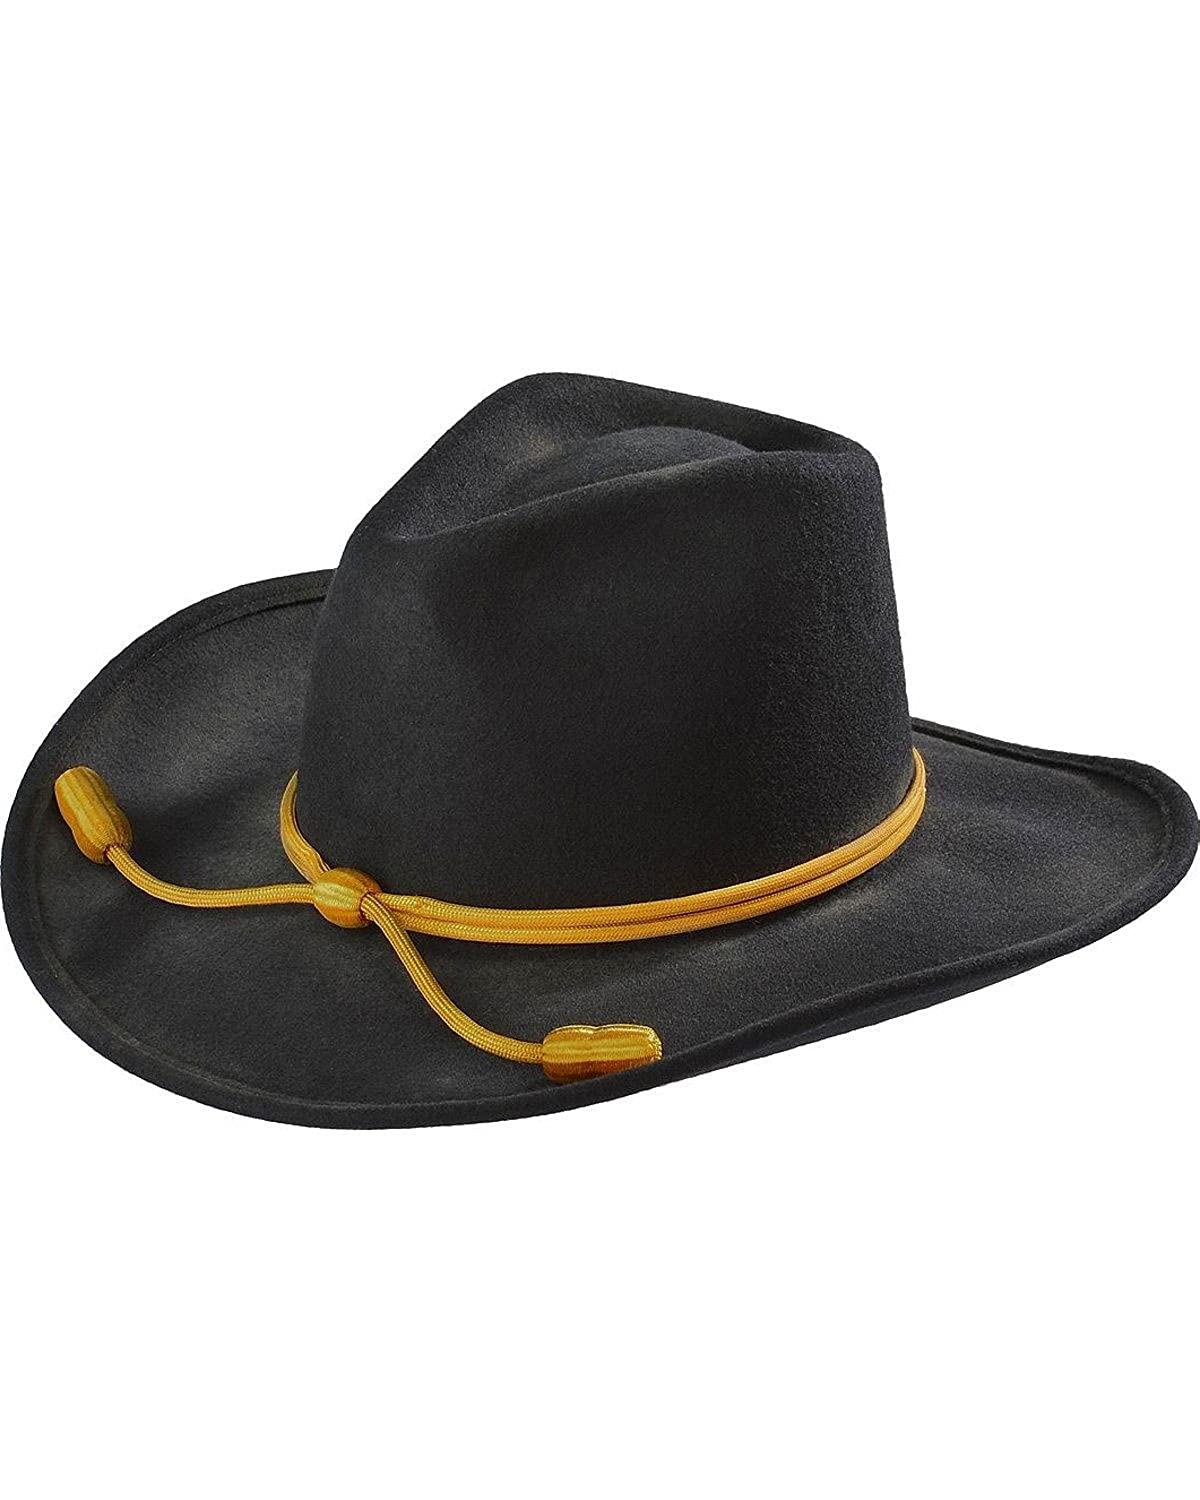 Amazon.com  Resistol Men s John Wayne Hondo Cavalry Hat Black Large   Clothing bb13151aa058